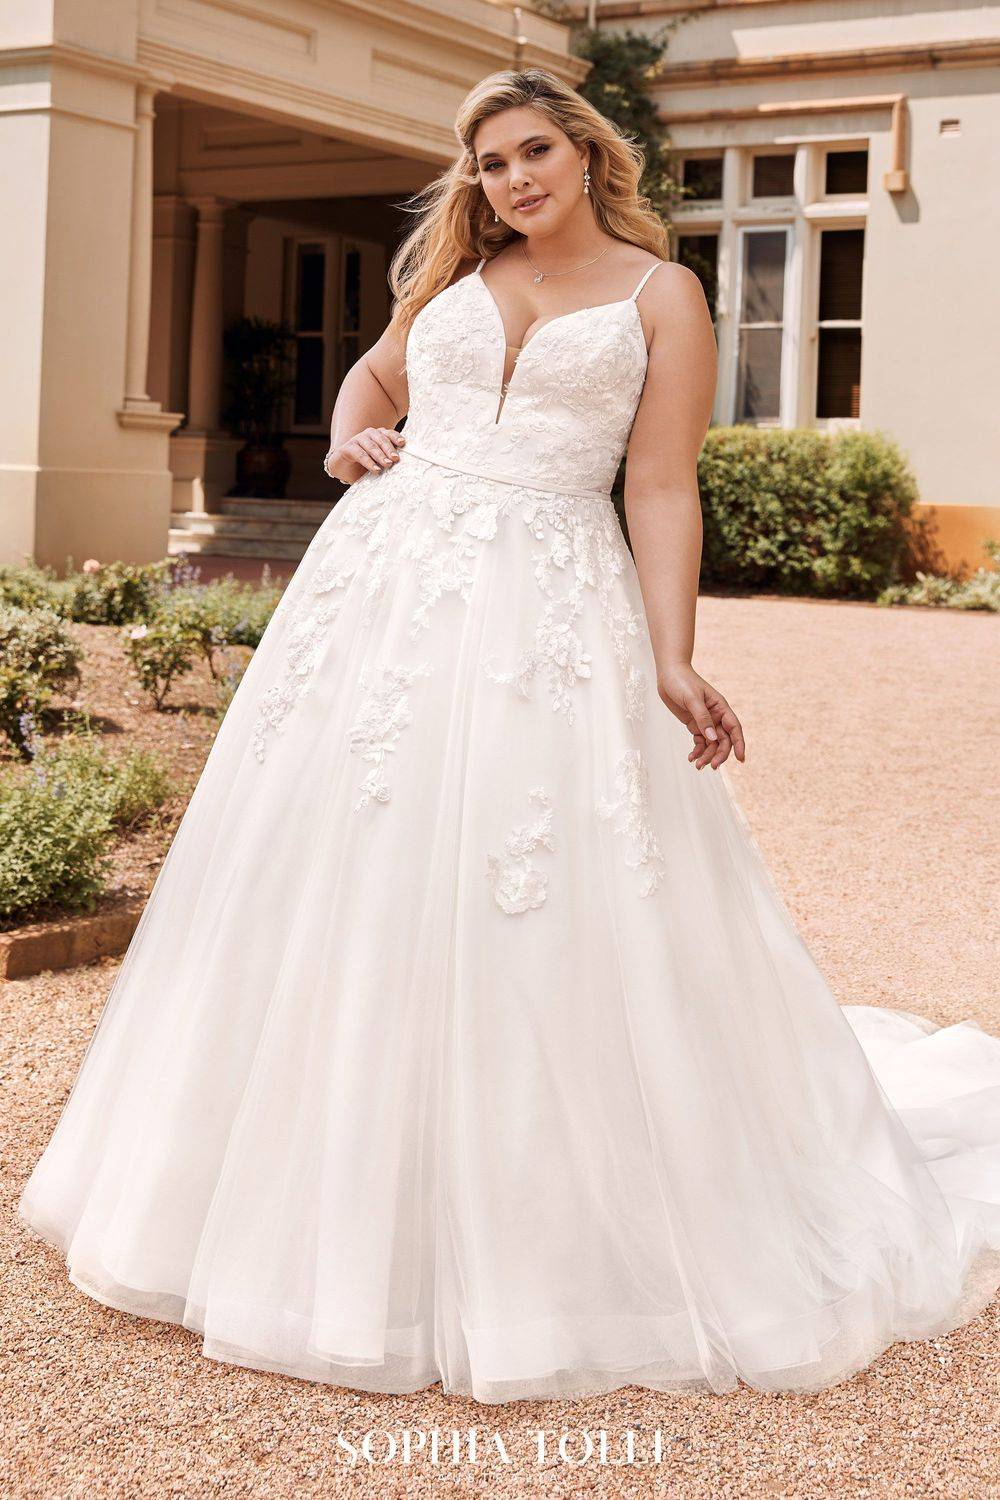 Plus size wedding dress in medway, maidstone, rochester, a line wedding dress